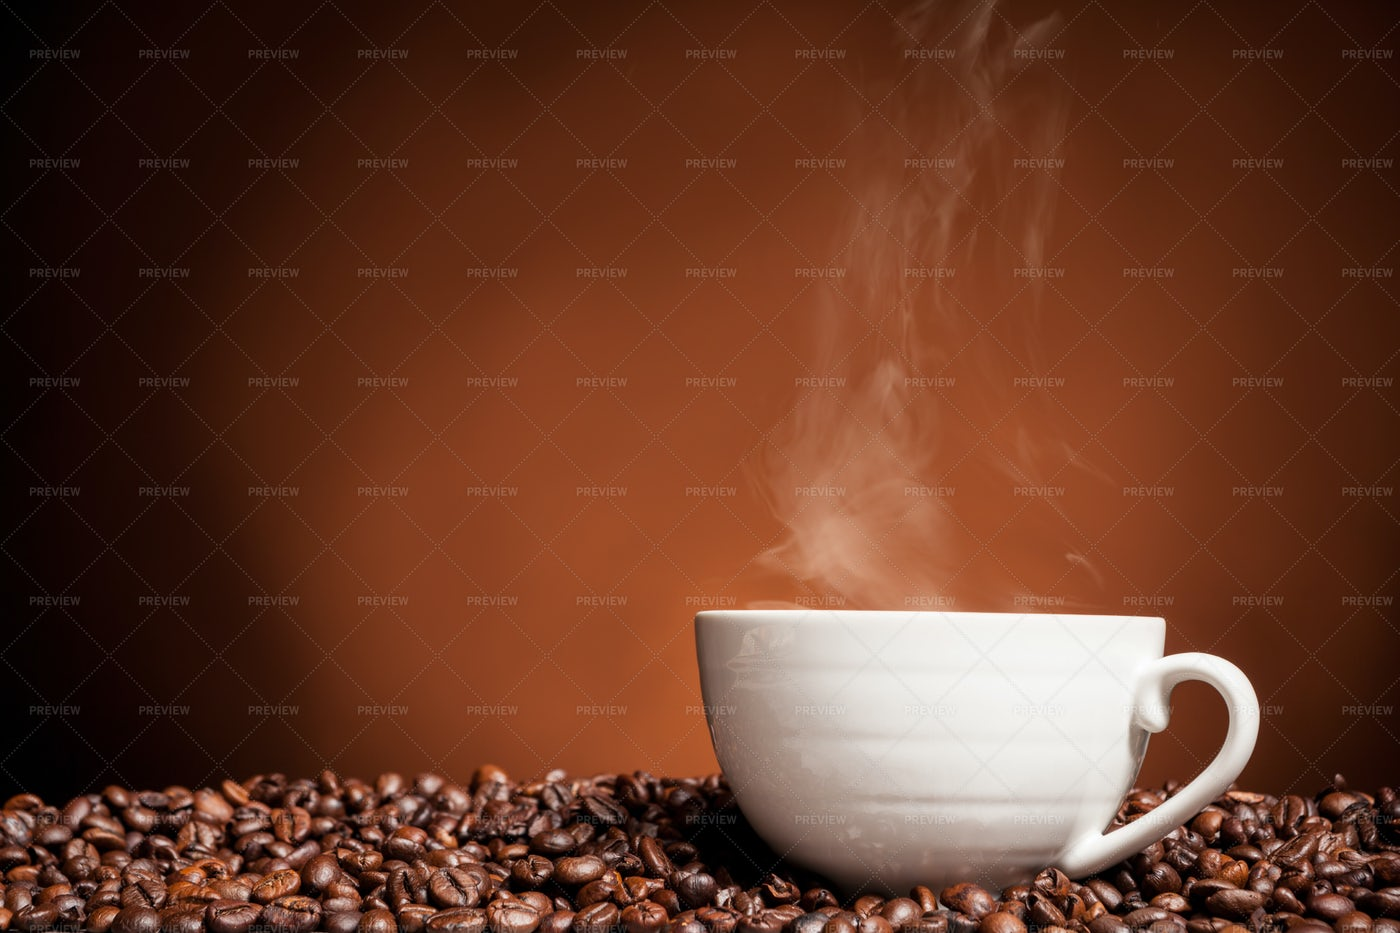 Hot coffee and beans: Stock Photos